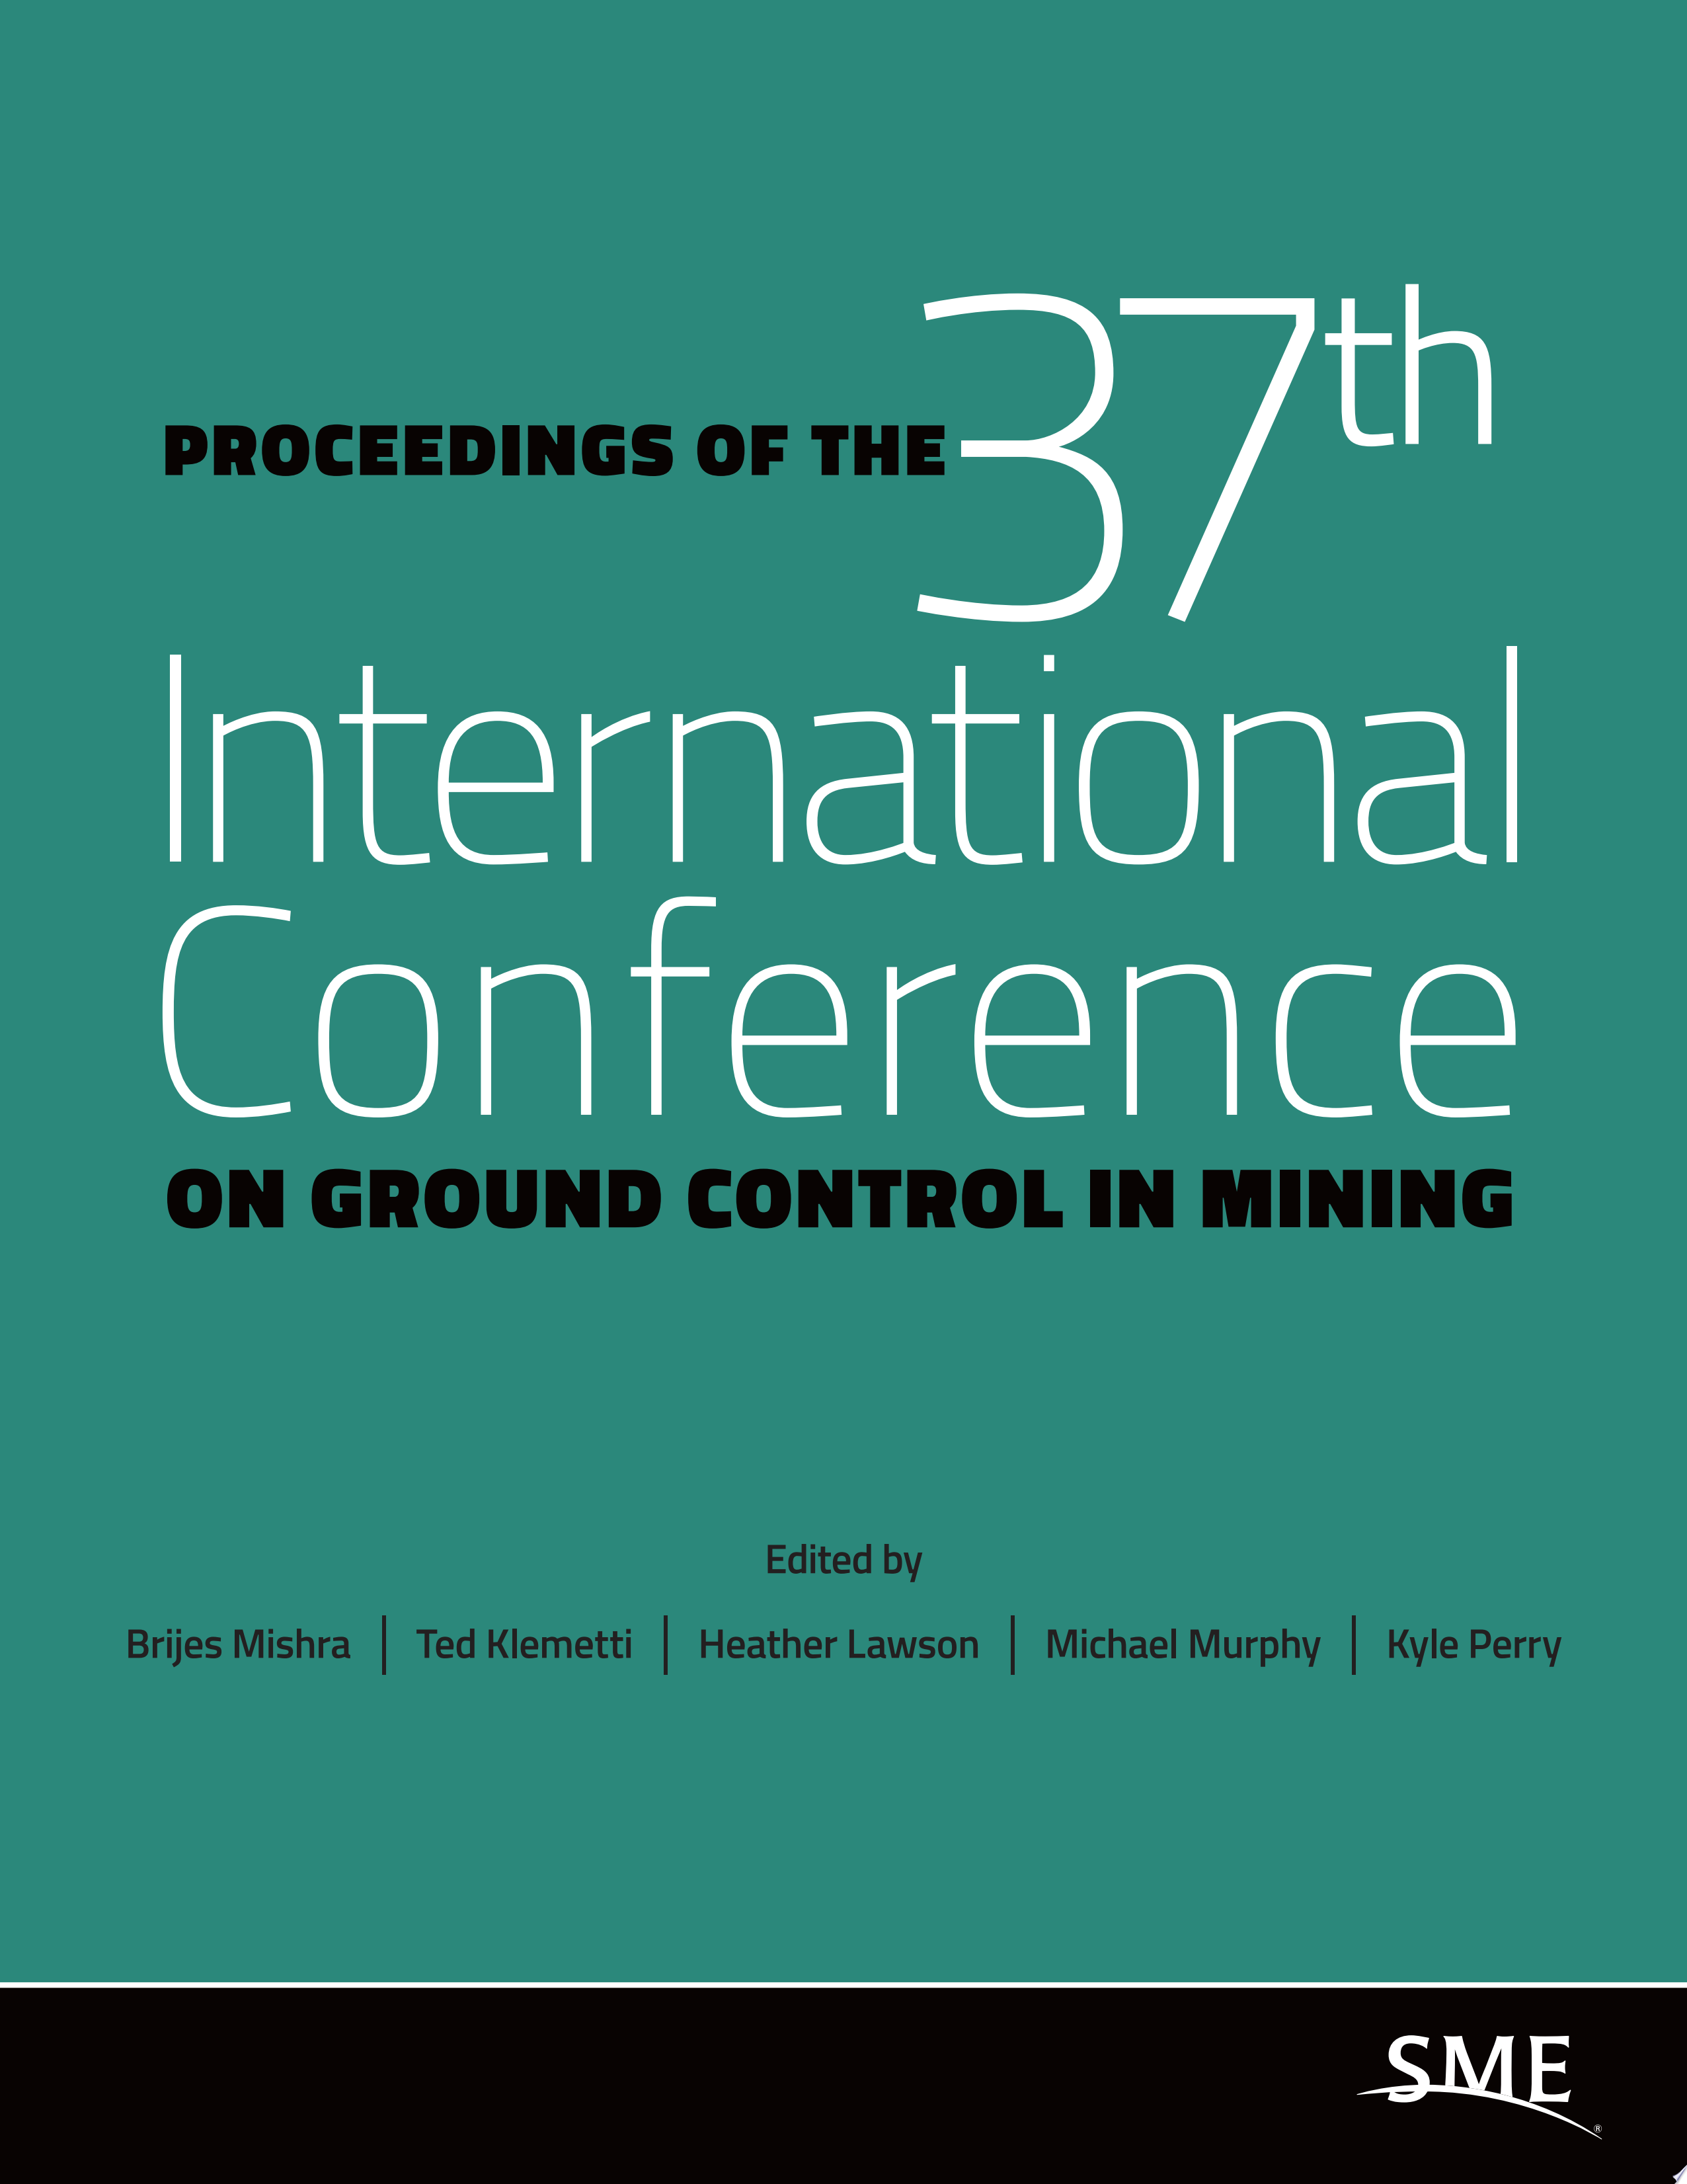 Proceedings of the 37th International Conference on Ground Control in Mining